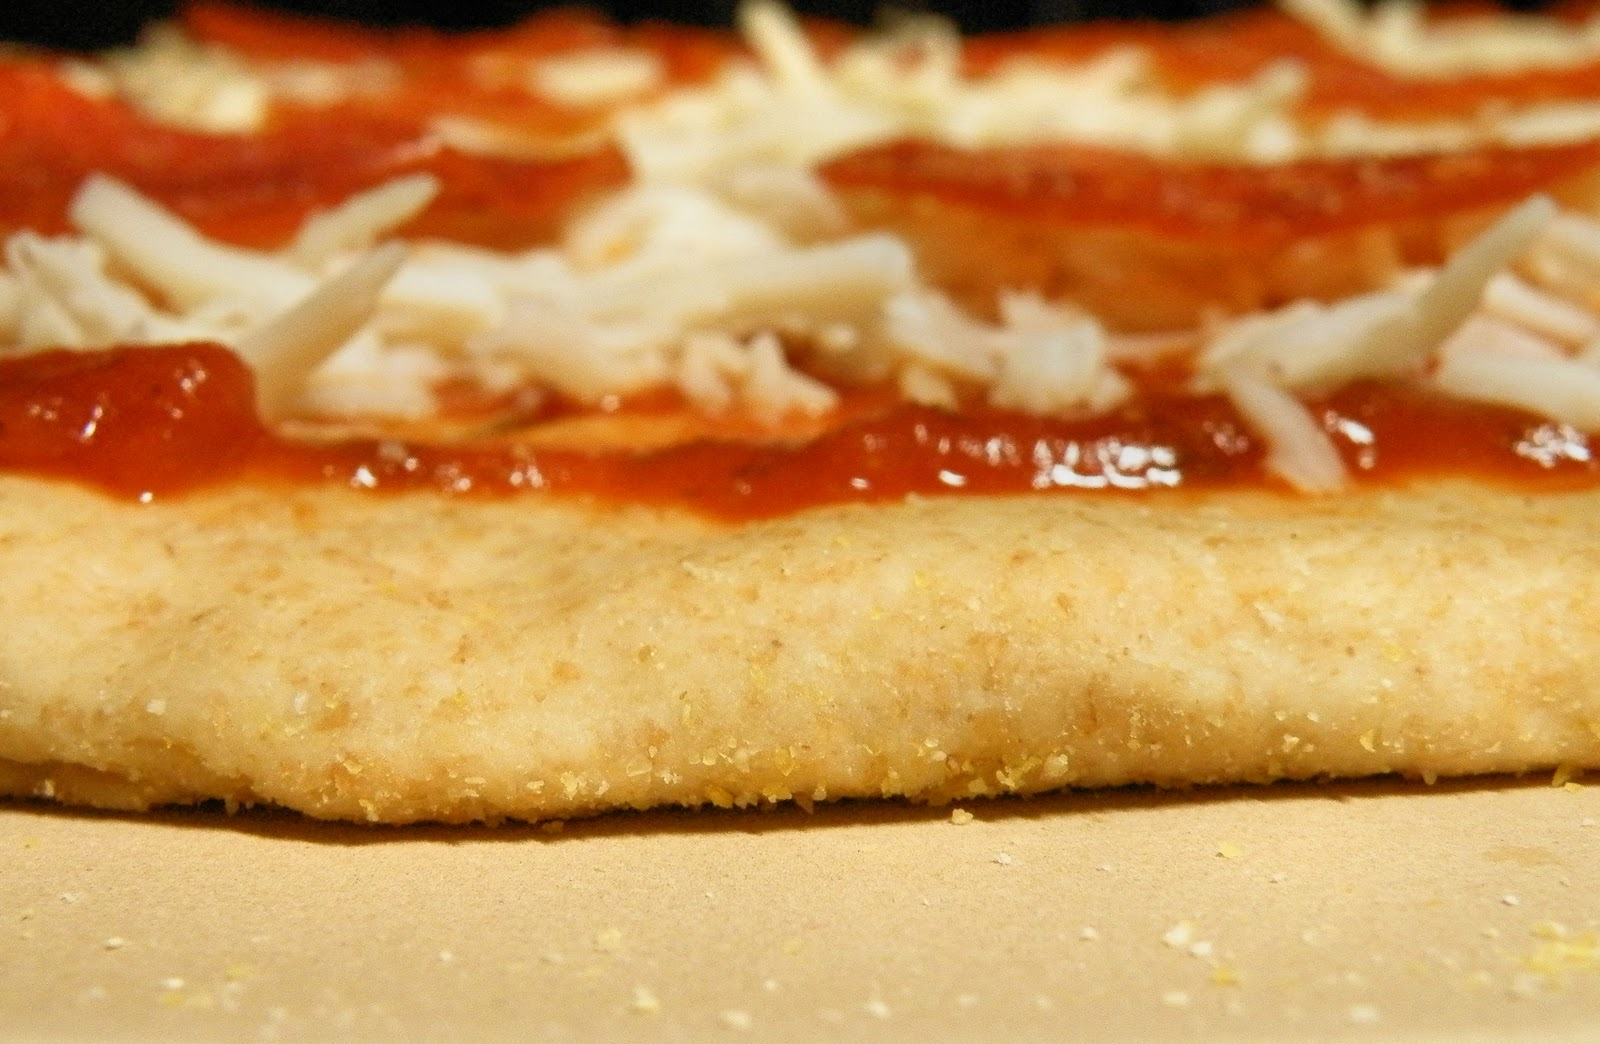 pizza crust jay s signature pizza crust jay s signature pizza crust ...